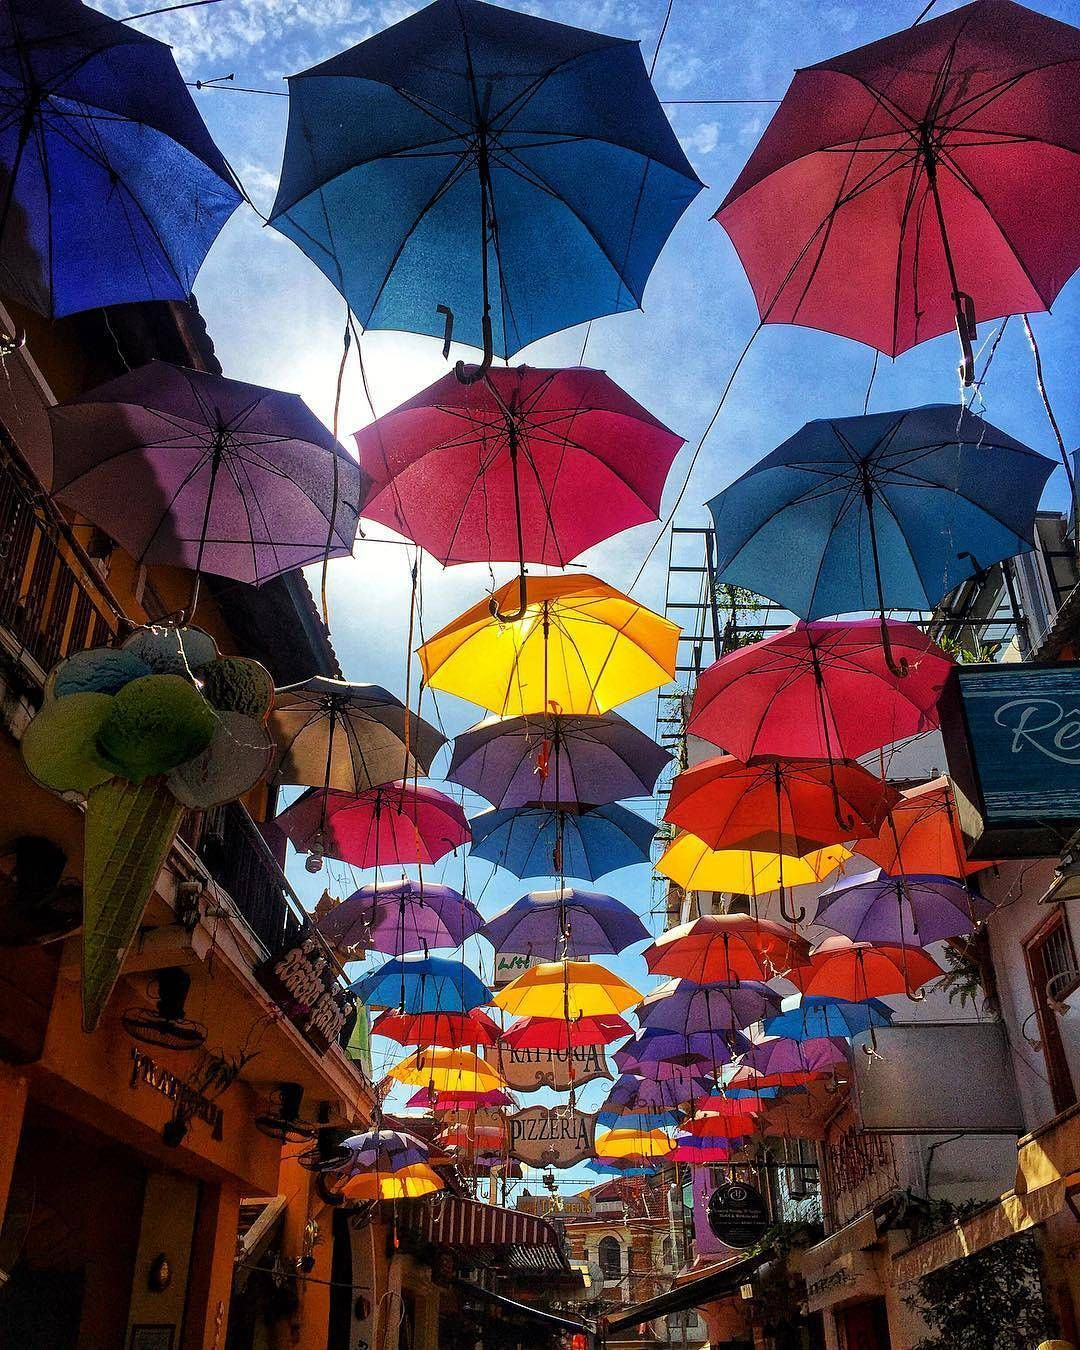 The Most Famous Street In Siem Reap Town Is Pub Street Dominated By Two Night Clubs Temple Club And Angkor What It Is L Angkor Siem Reap Cambodia Asia Travel